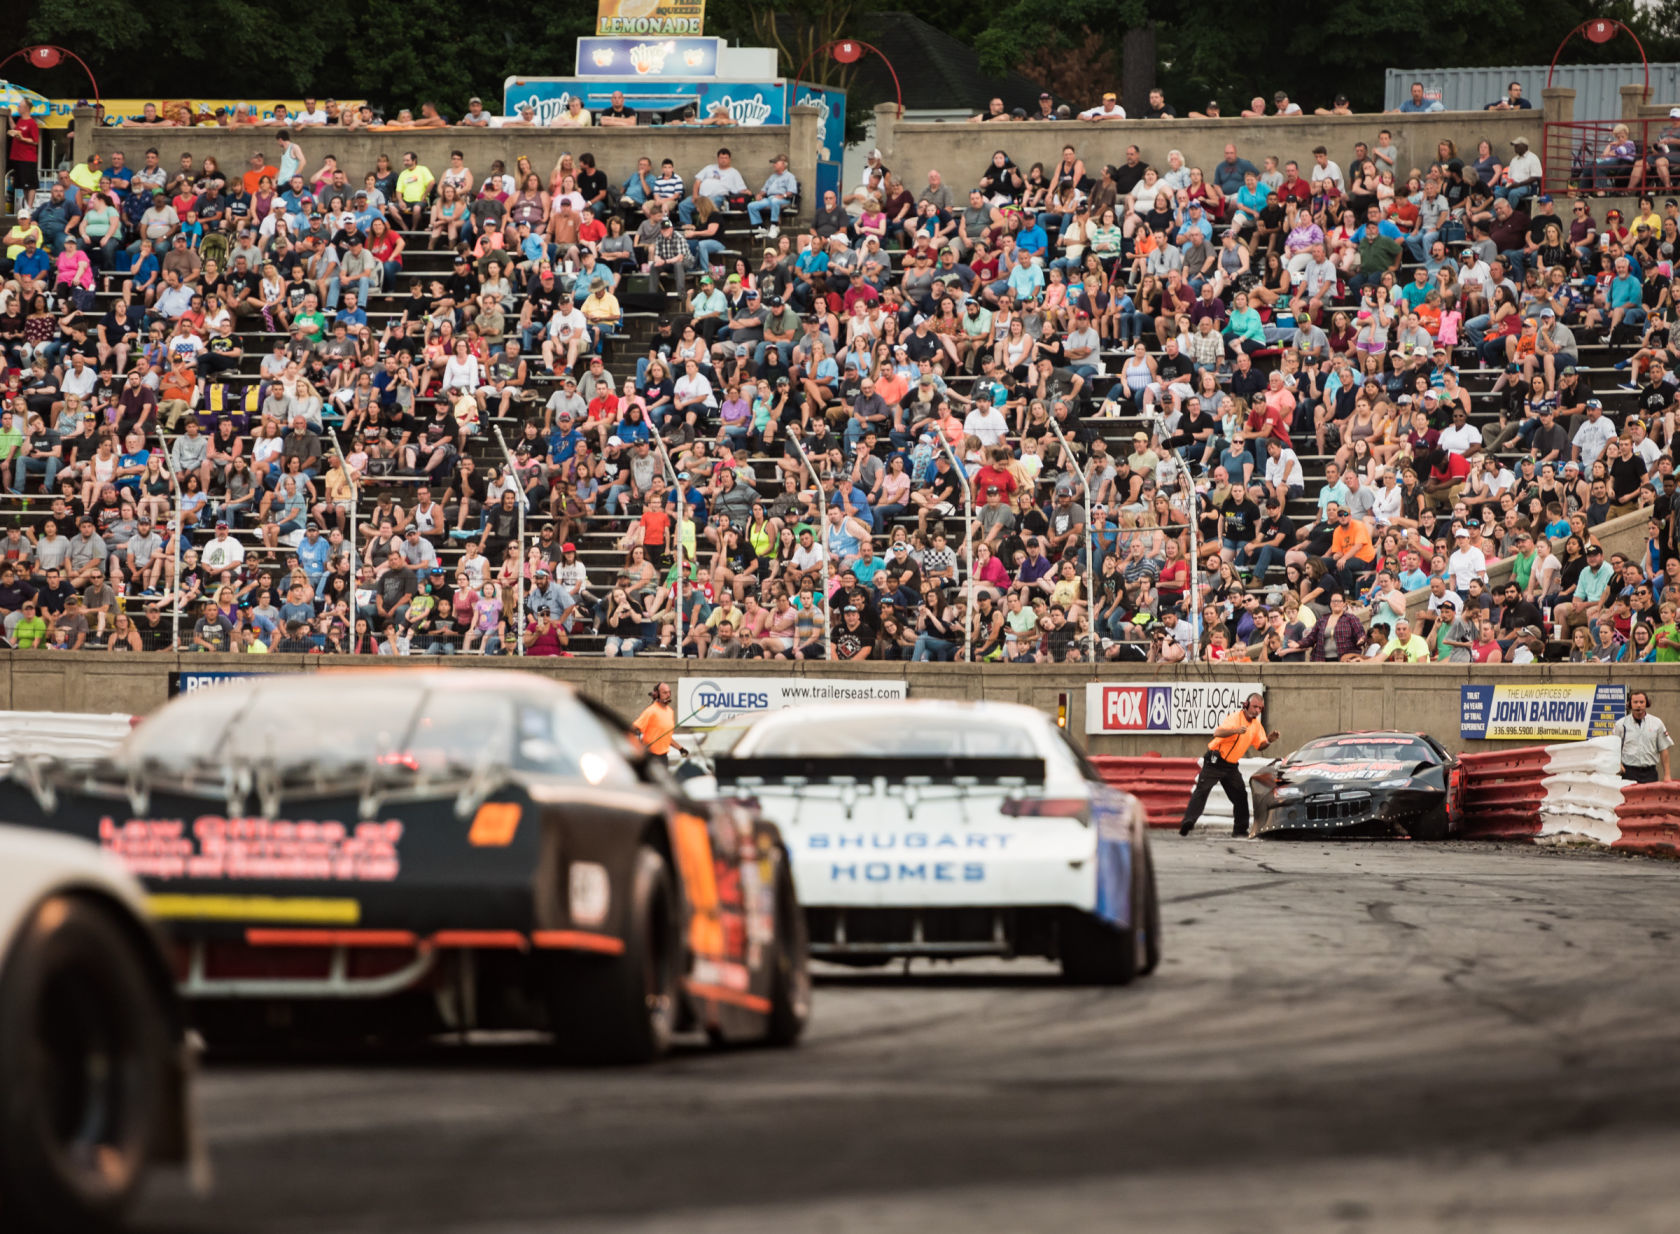 Parking for Bowman Gray's last race of the season? The city has a plan to deal with crowds. | Winston Salem Journal